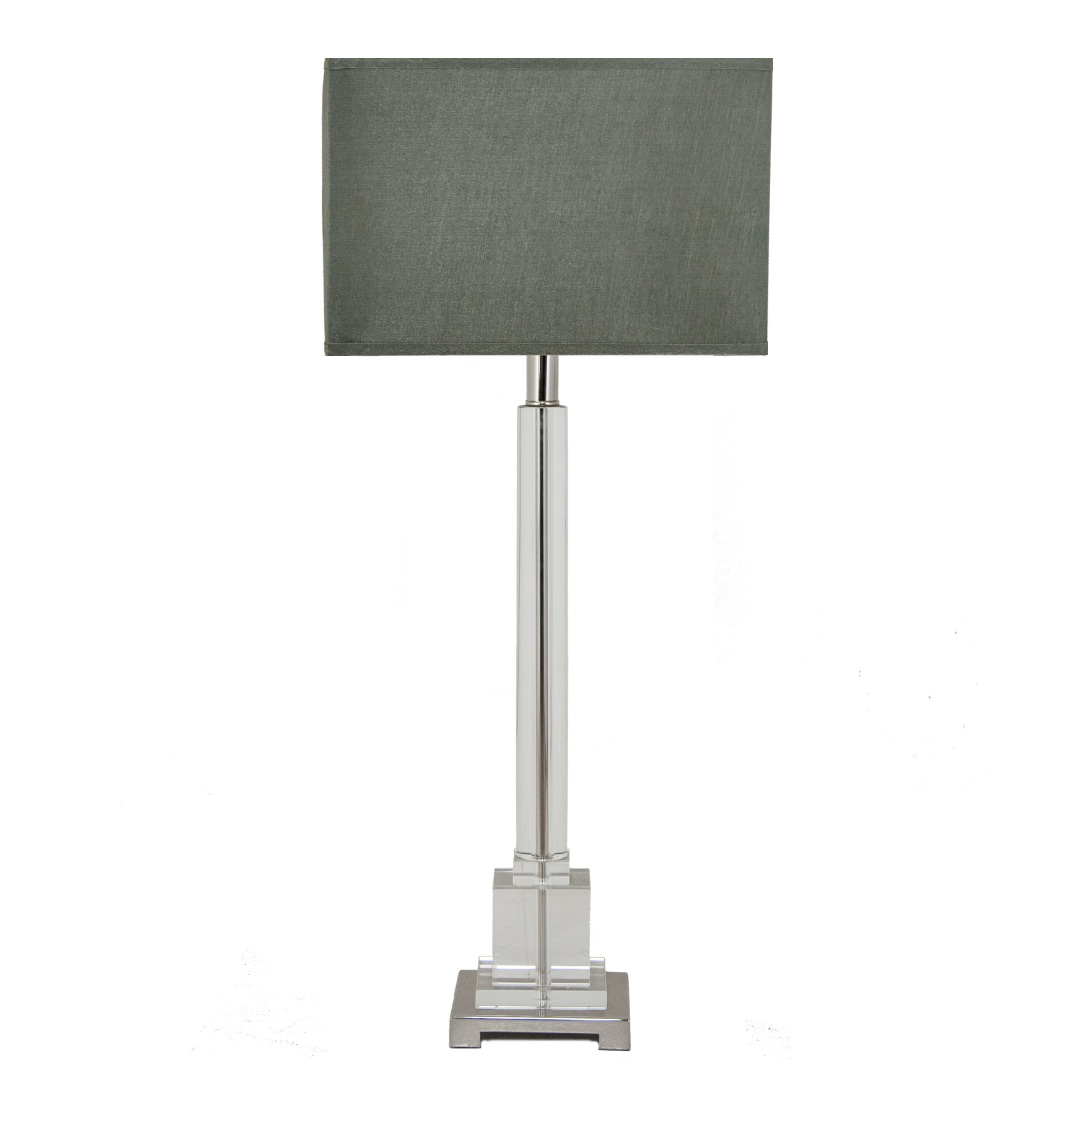 EMPIRE TABLE LAMP WITH SHADE -32738